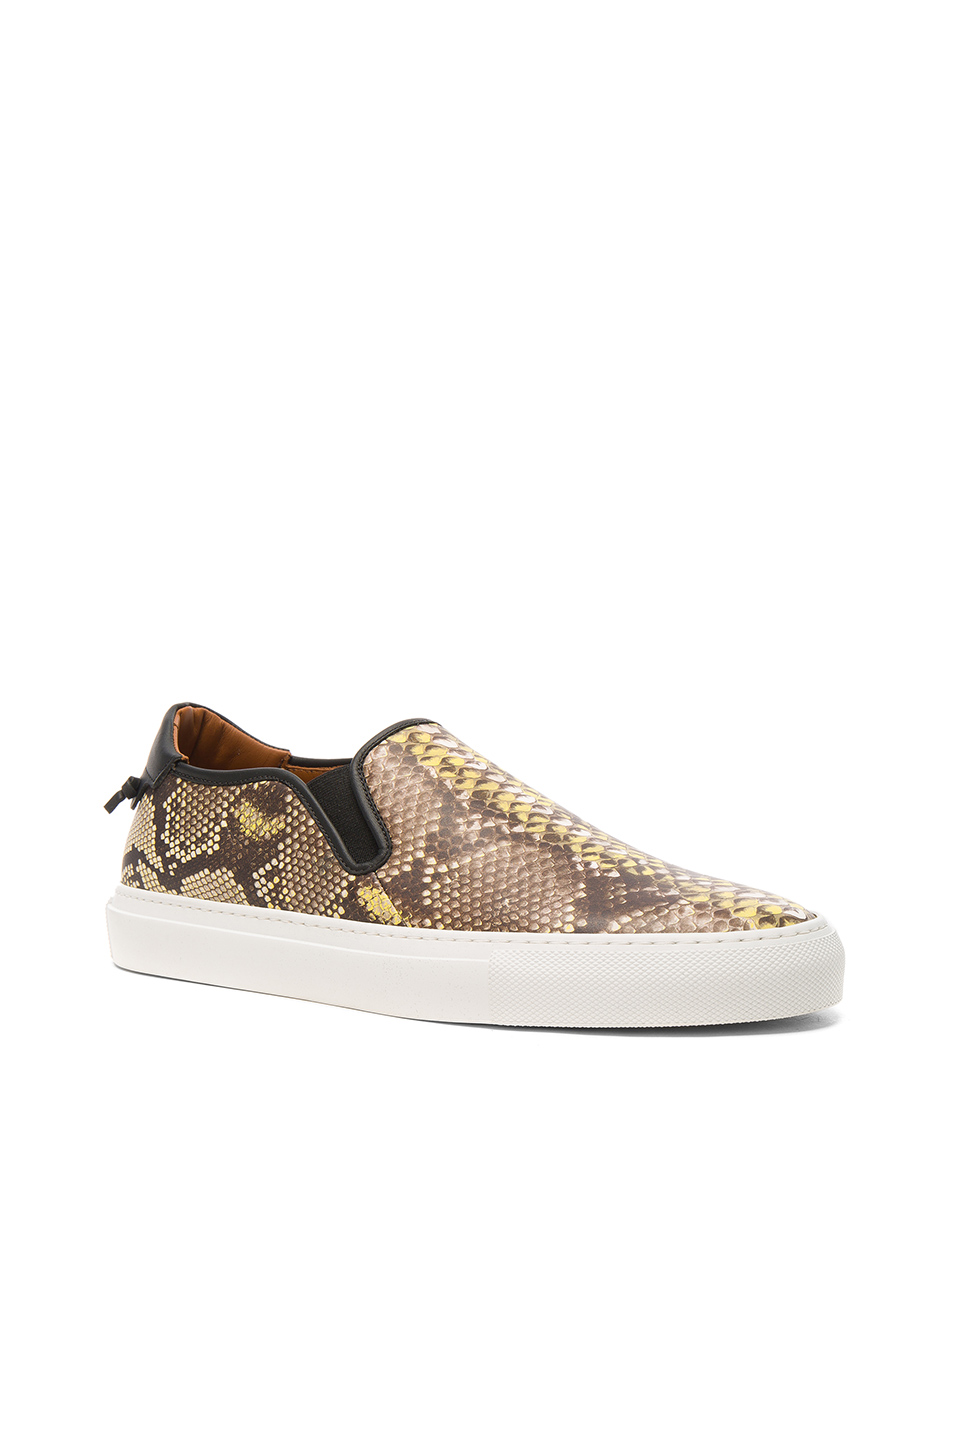 Givenchy Python Printed Slip On Printed Leather Sneakers in Animal Print,Yellow,Brown